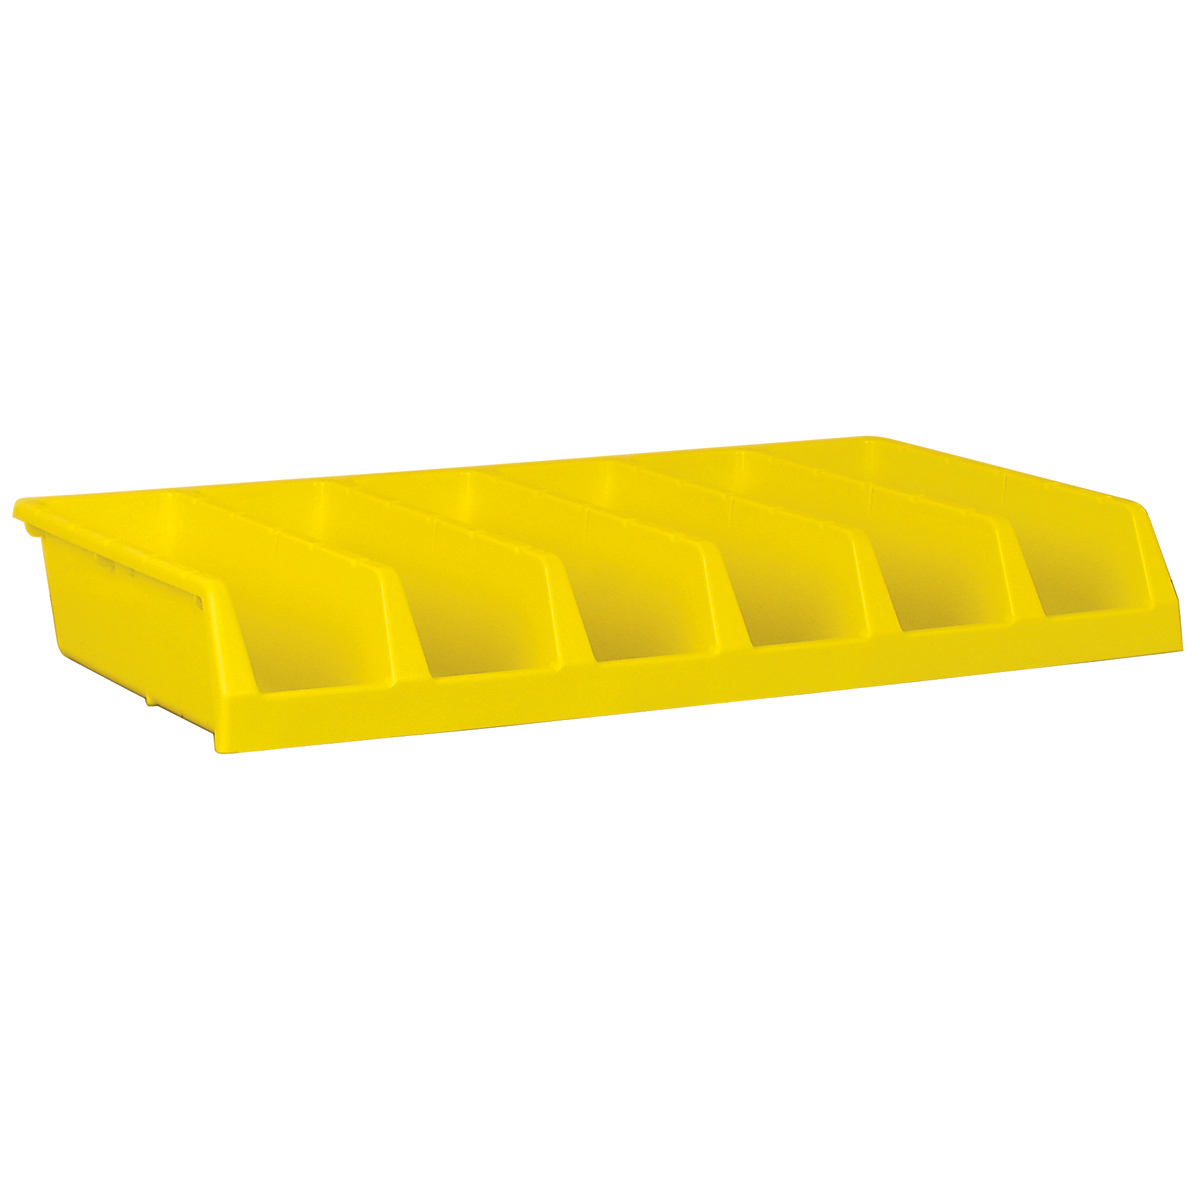 System Bin 18 x 33 x 5, Yellow (30318YELLO).  This item sold in carton quantities of 5.